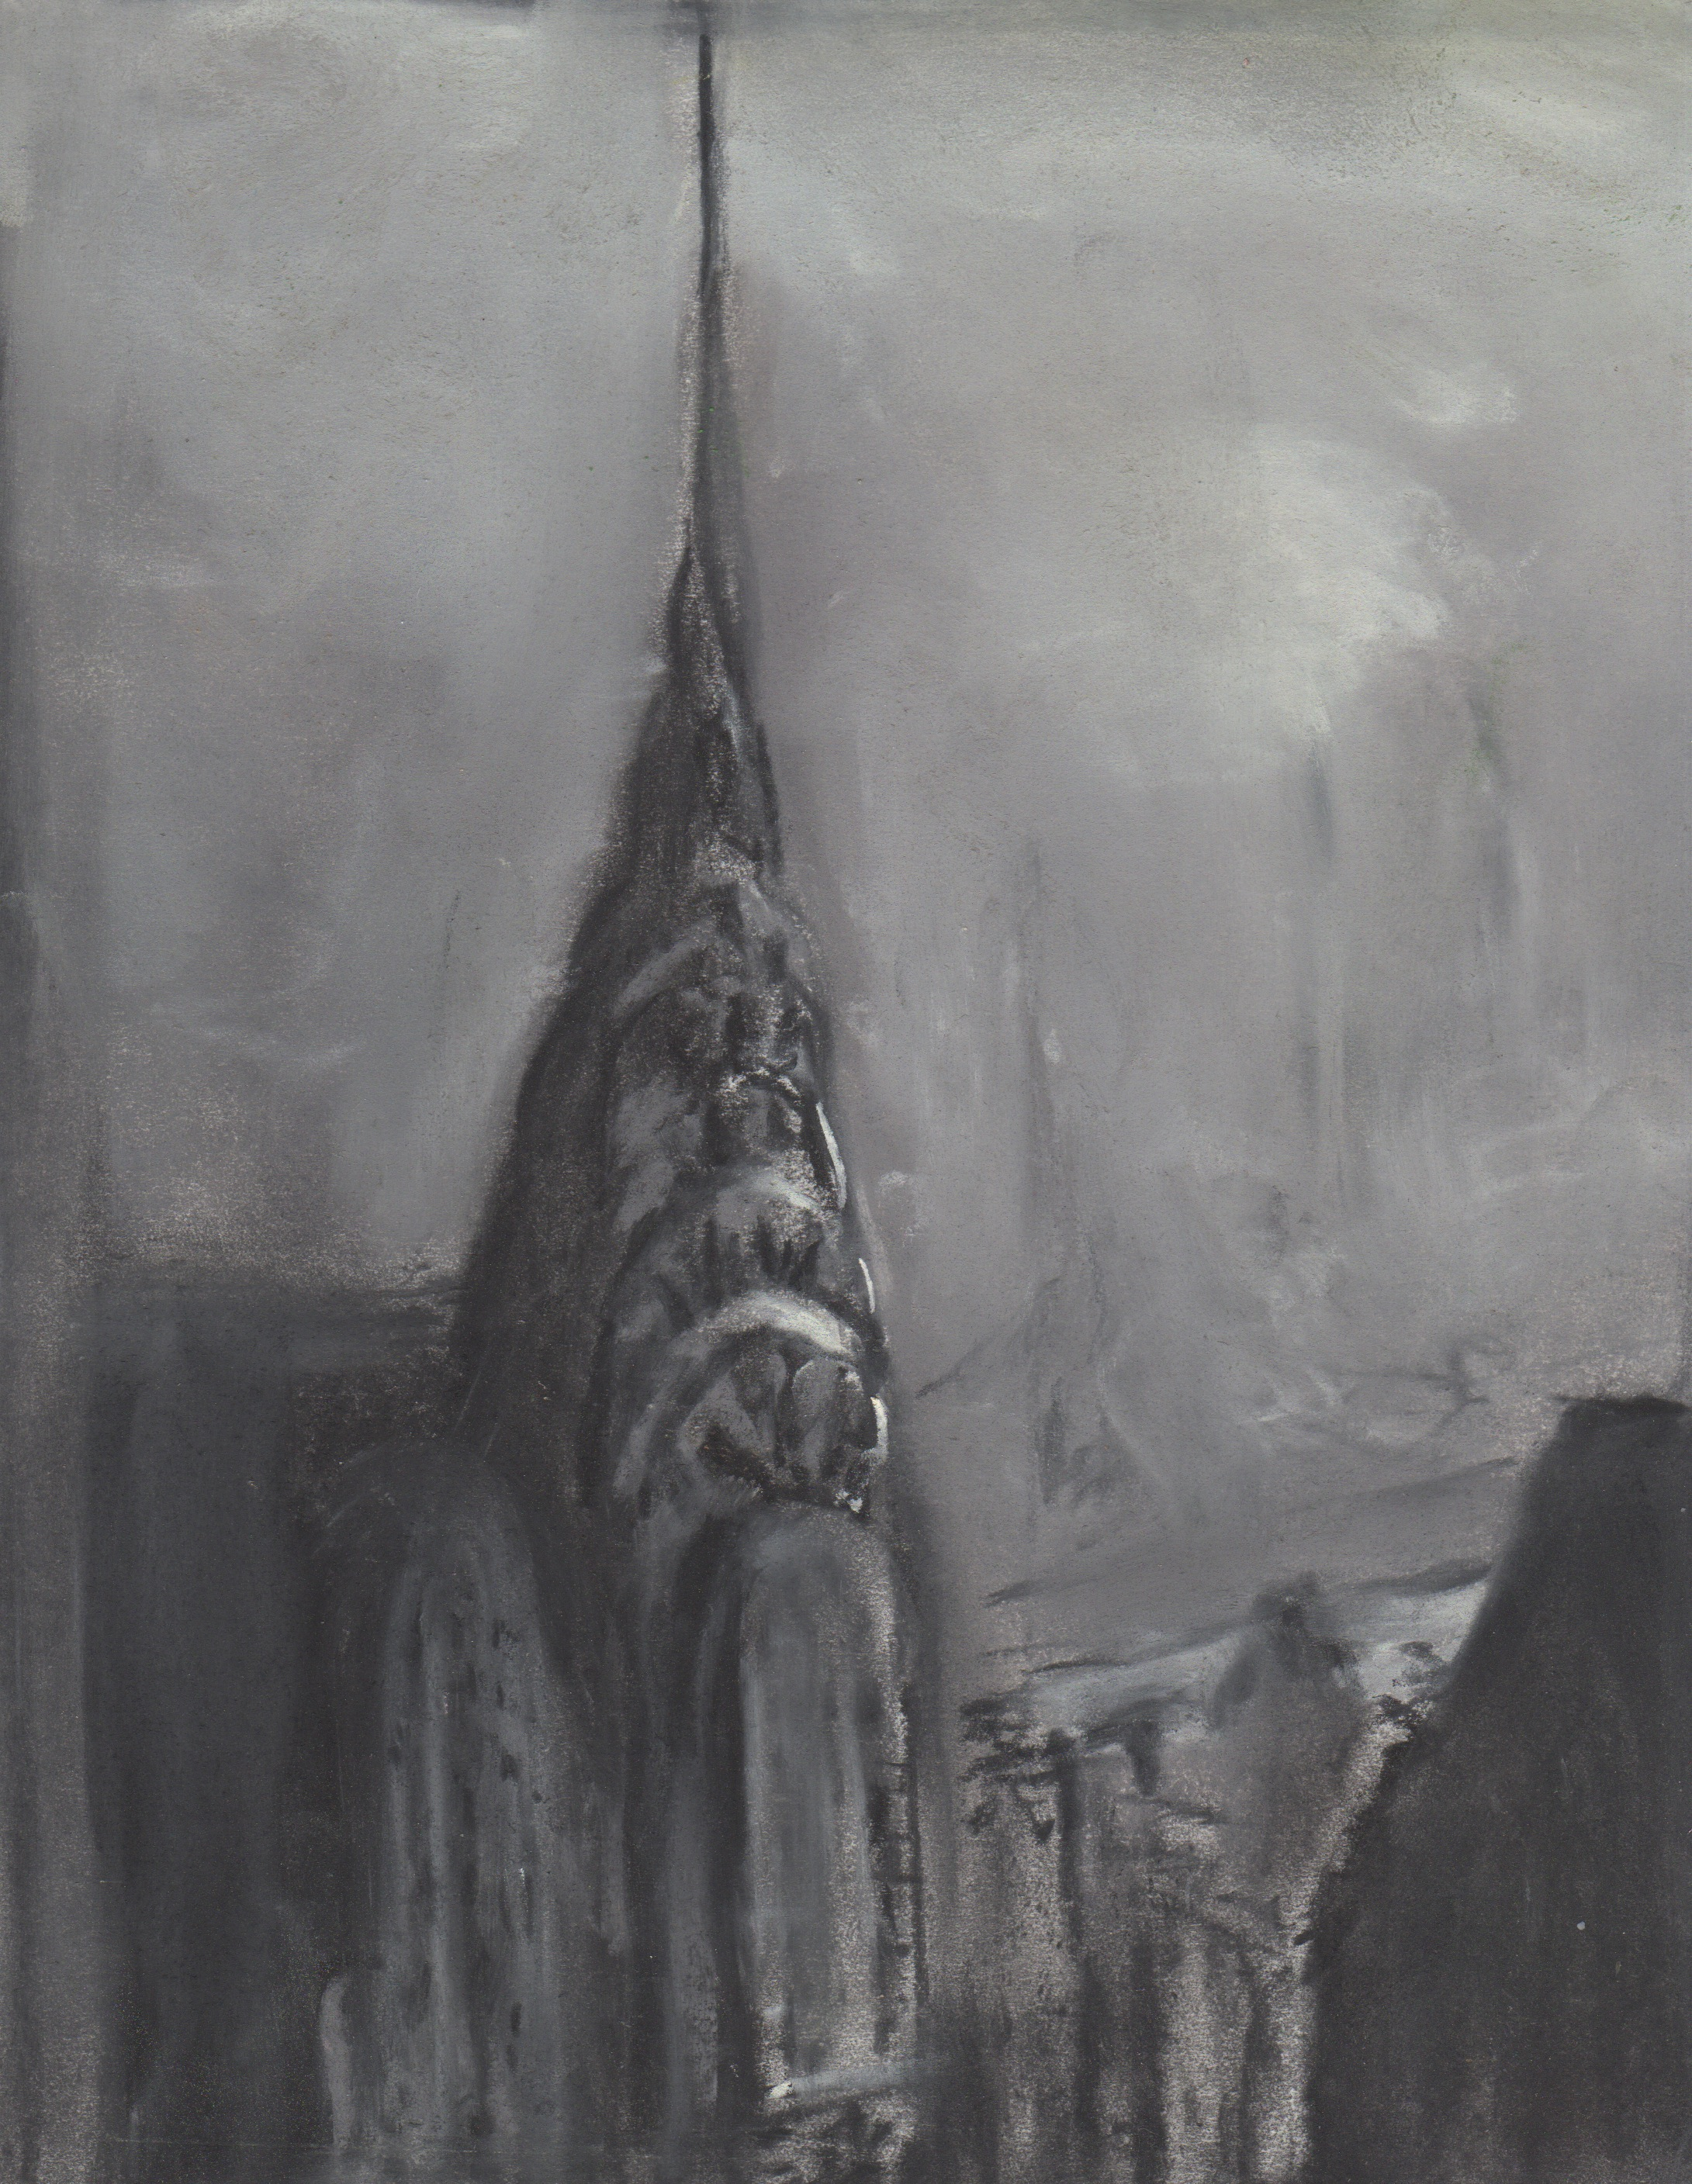 Chrysler Building, charcoal, 8x10, $40